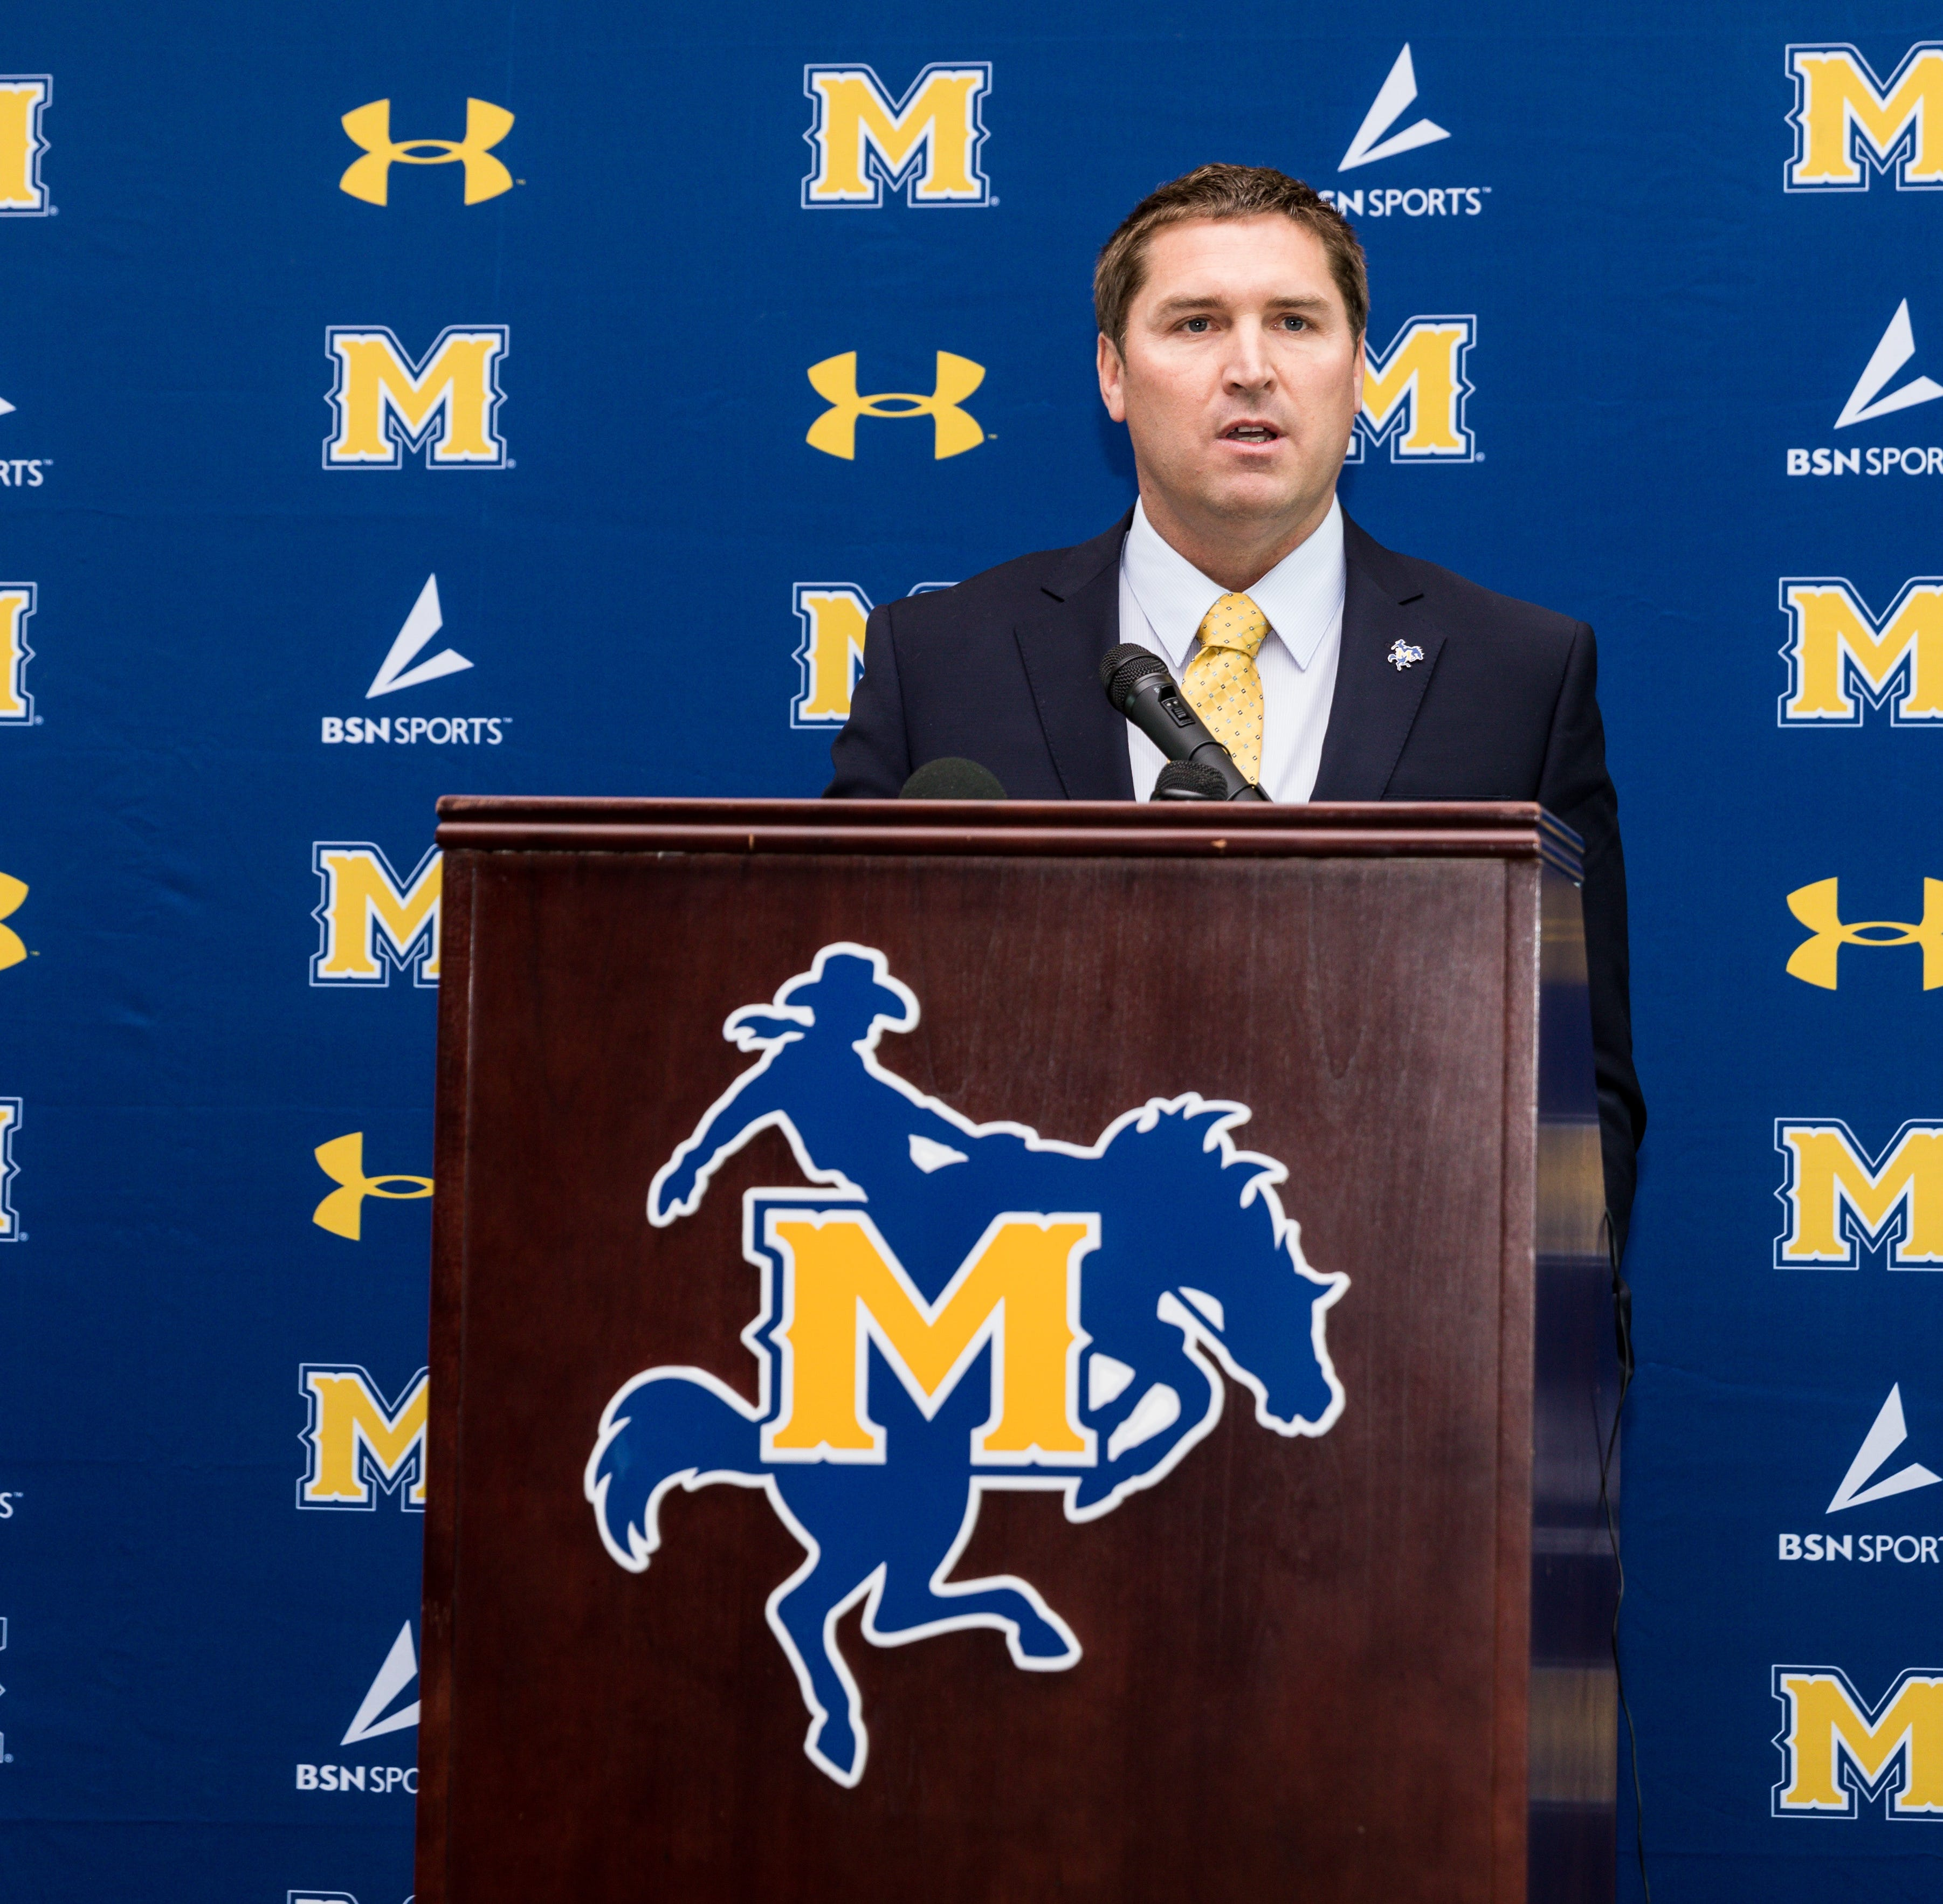 McNeese introduces new football coach